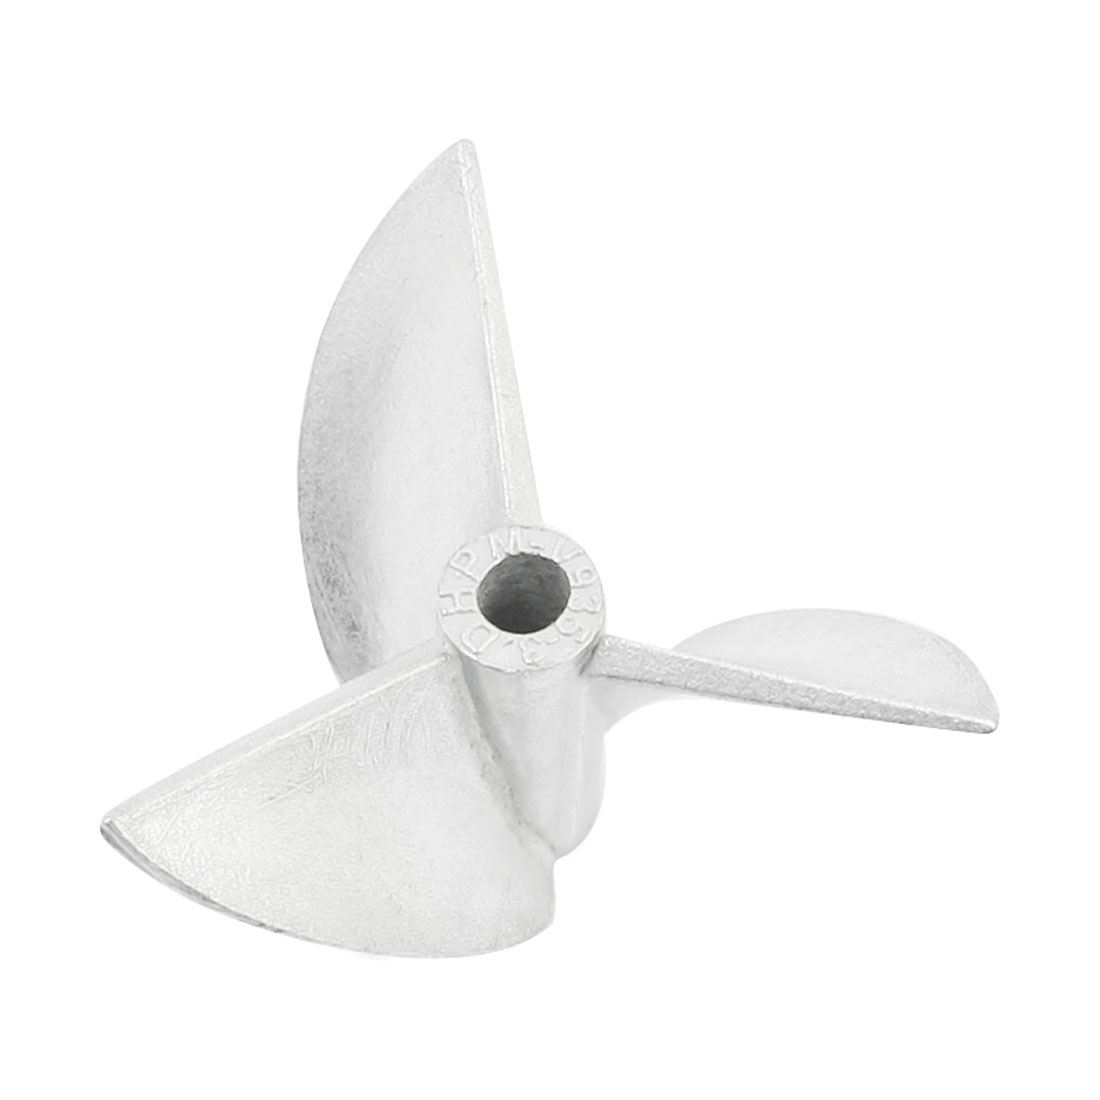 35mm Dia P/D1.9 Aluminium Alloy 3 Vanes CW Positive Rotating Propeller Prop for 3mm Dia Shaft RC Boat Ship Model